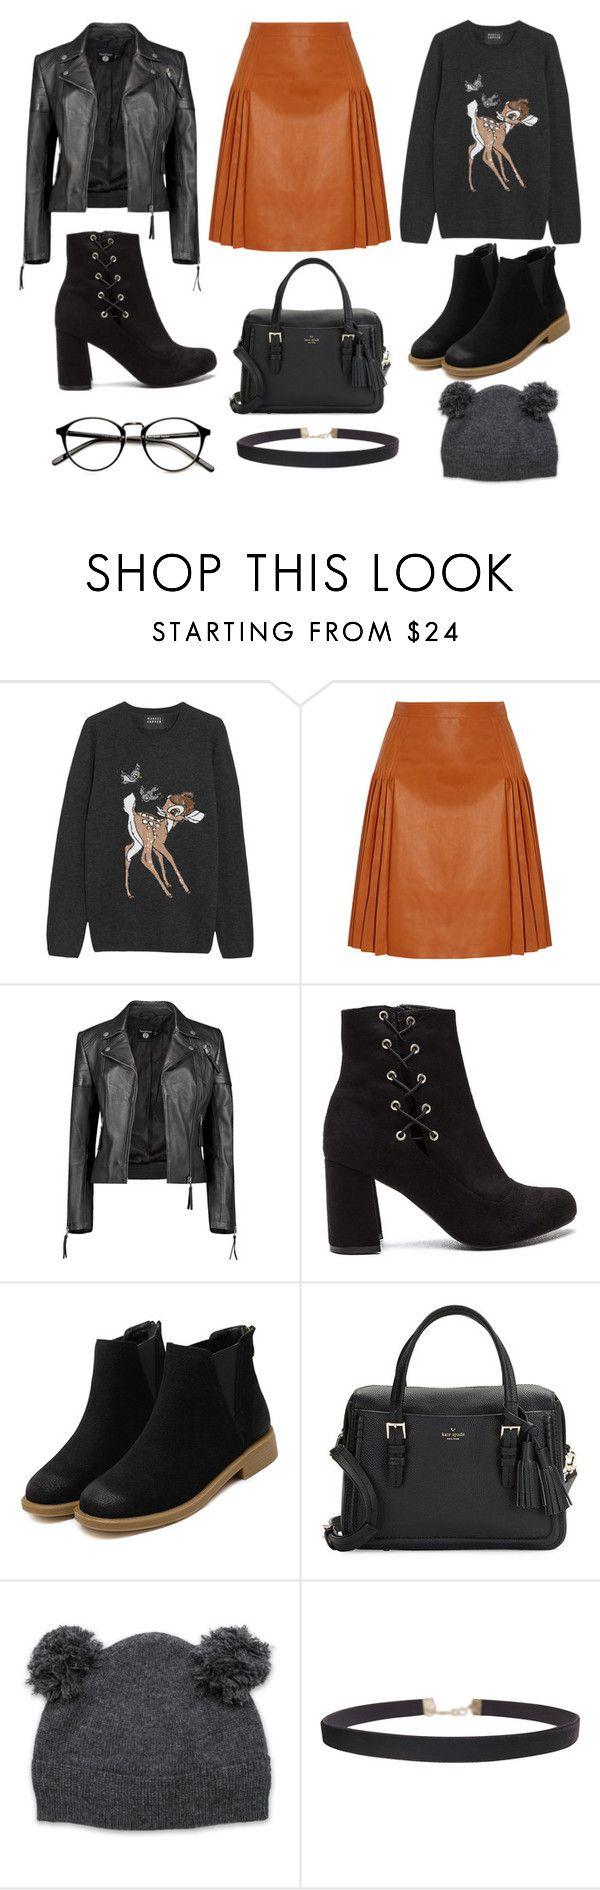 What to wear - skirt, jumper, boots, leather jacket. Fall winter look